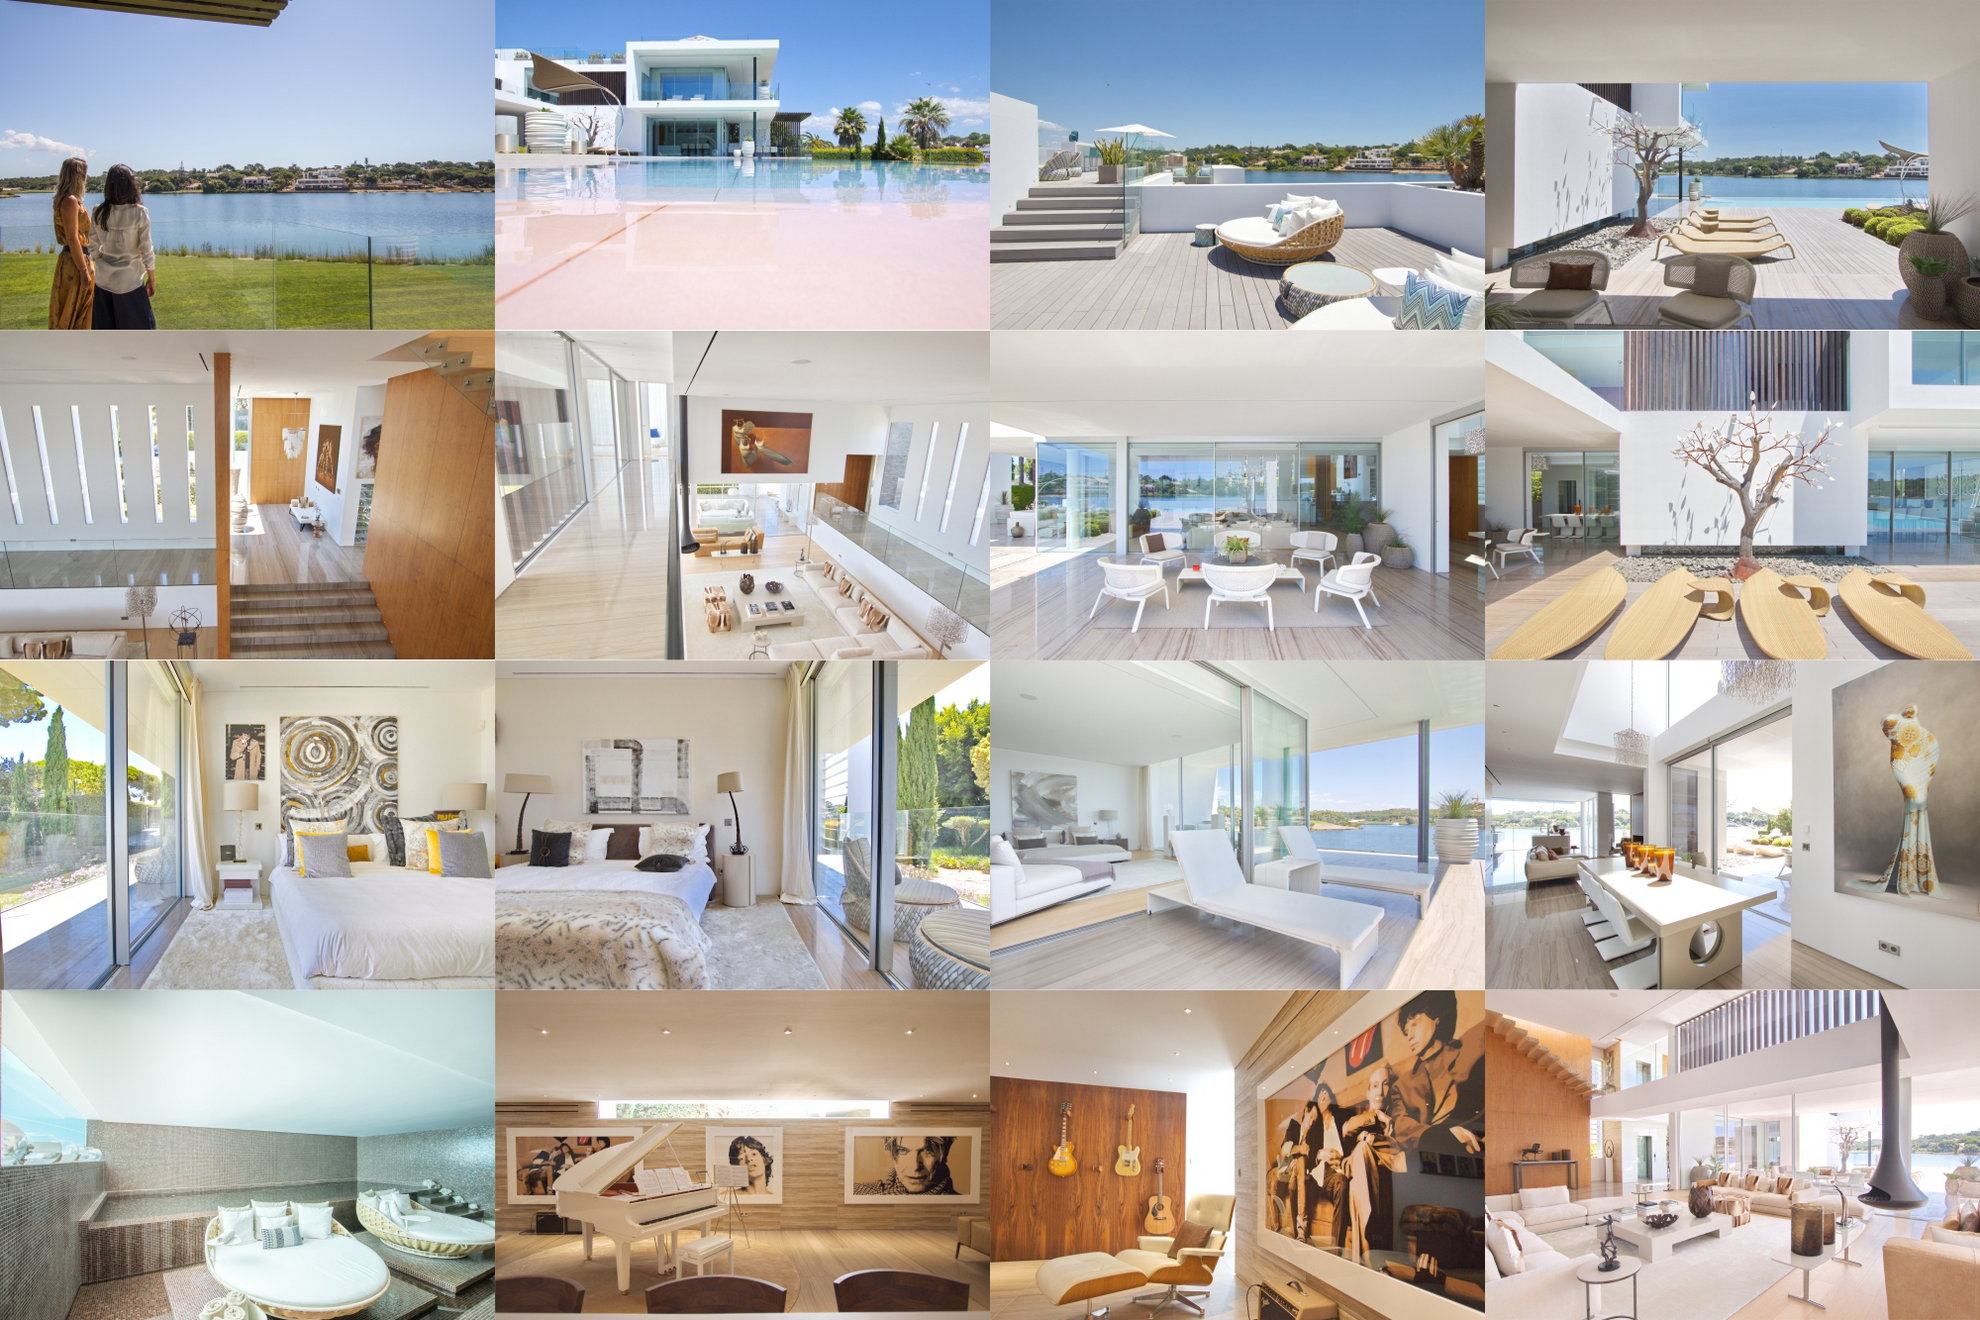 Other beautiful areas of this impressive Super Villa. For more information please enquire.